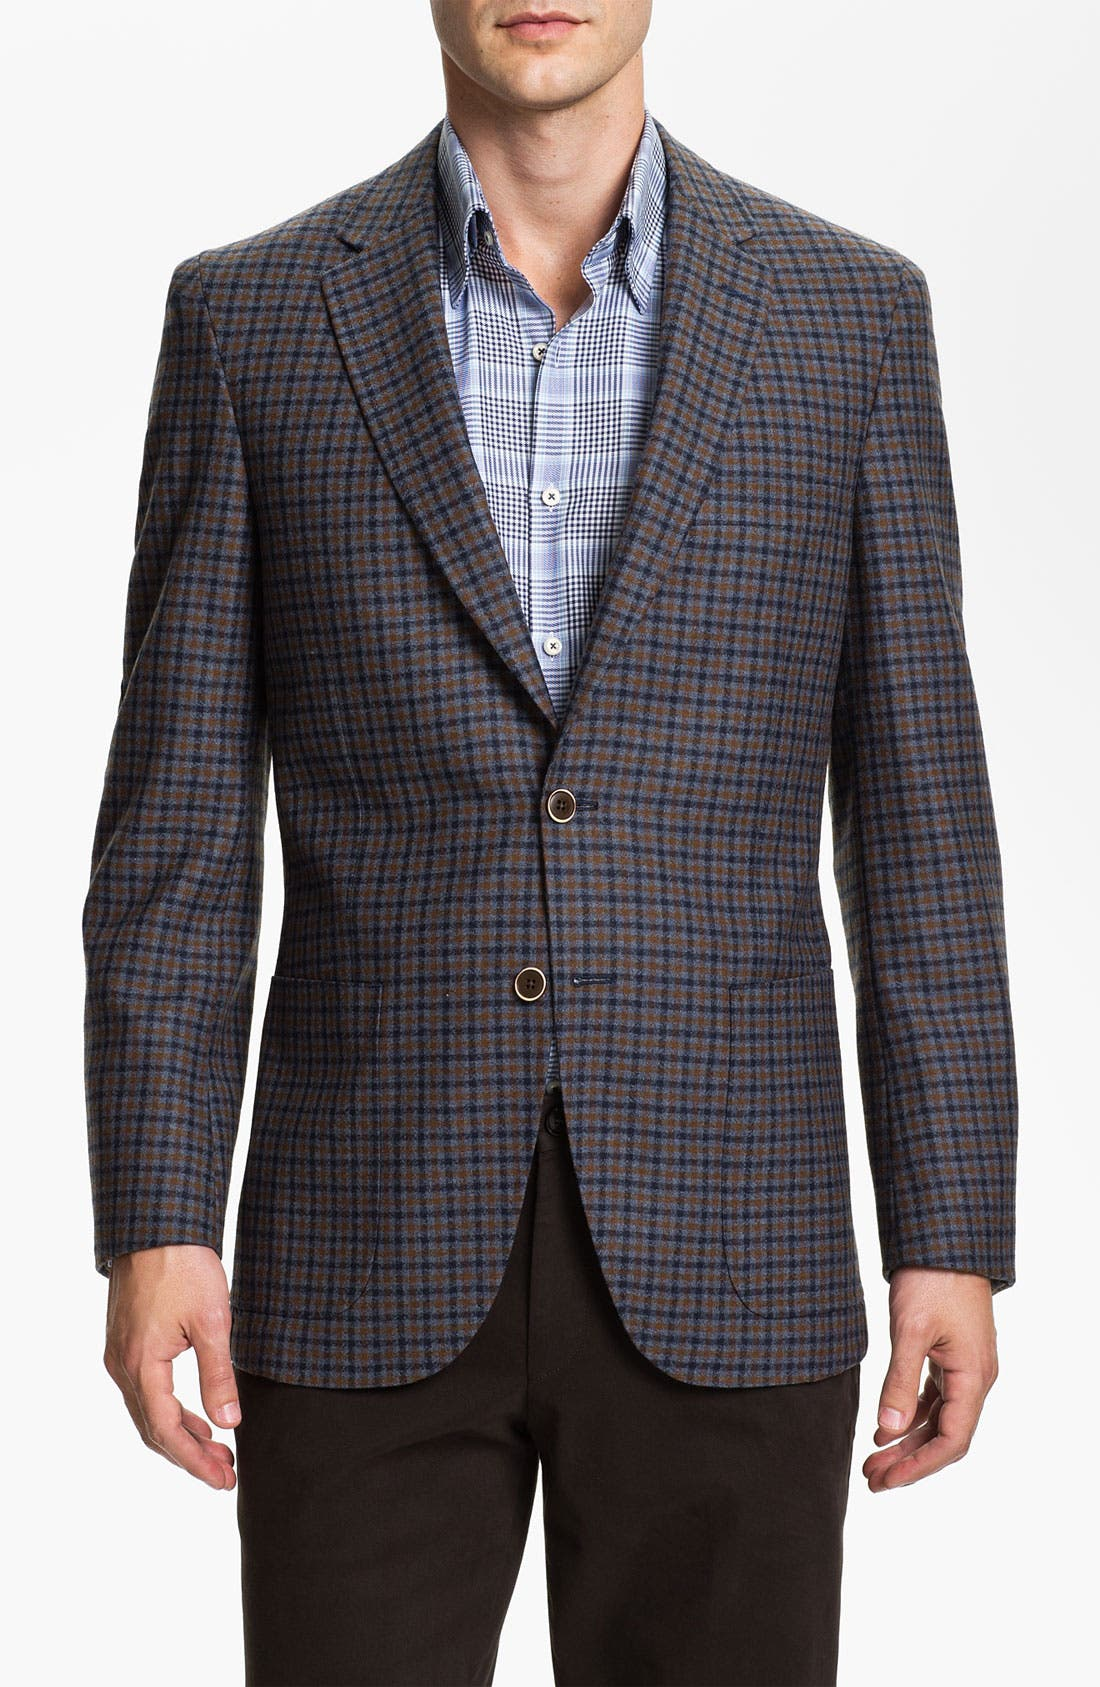 Alternate Image 1 Selected - Peter Millar Wool & Cashmere Sportcoat